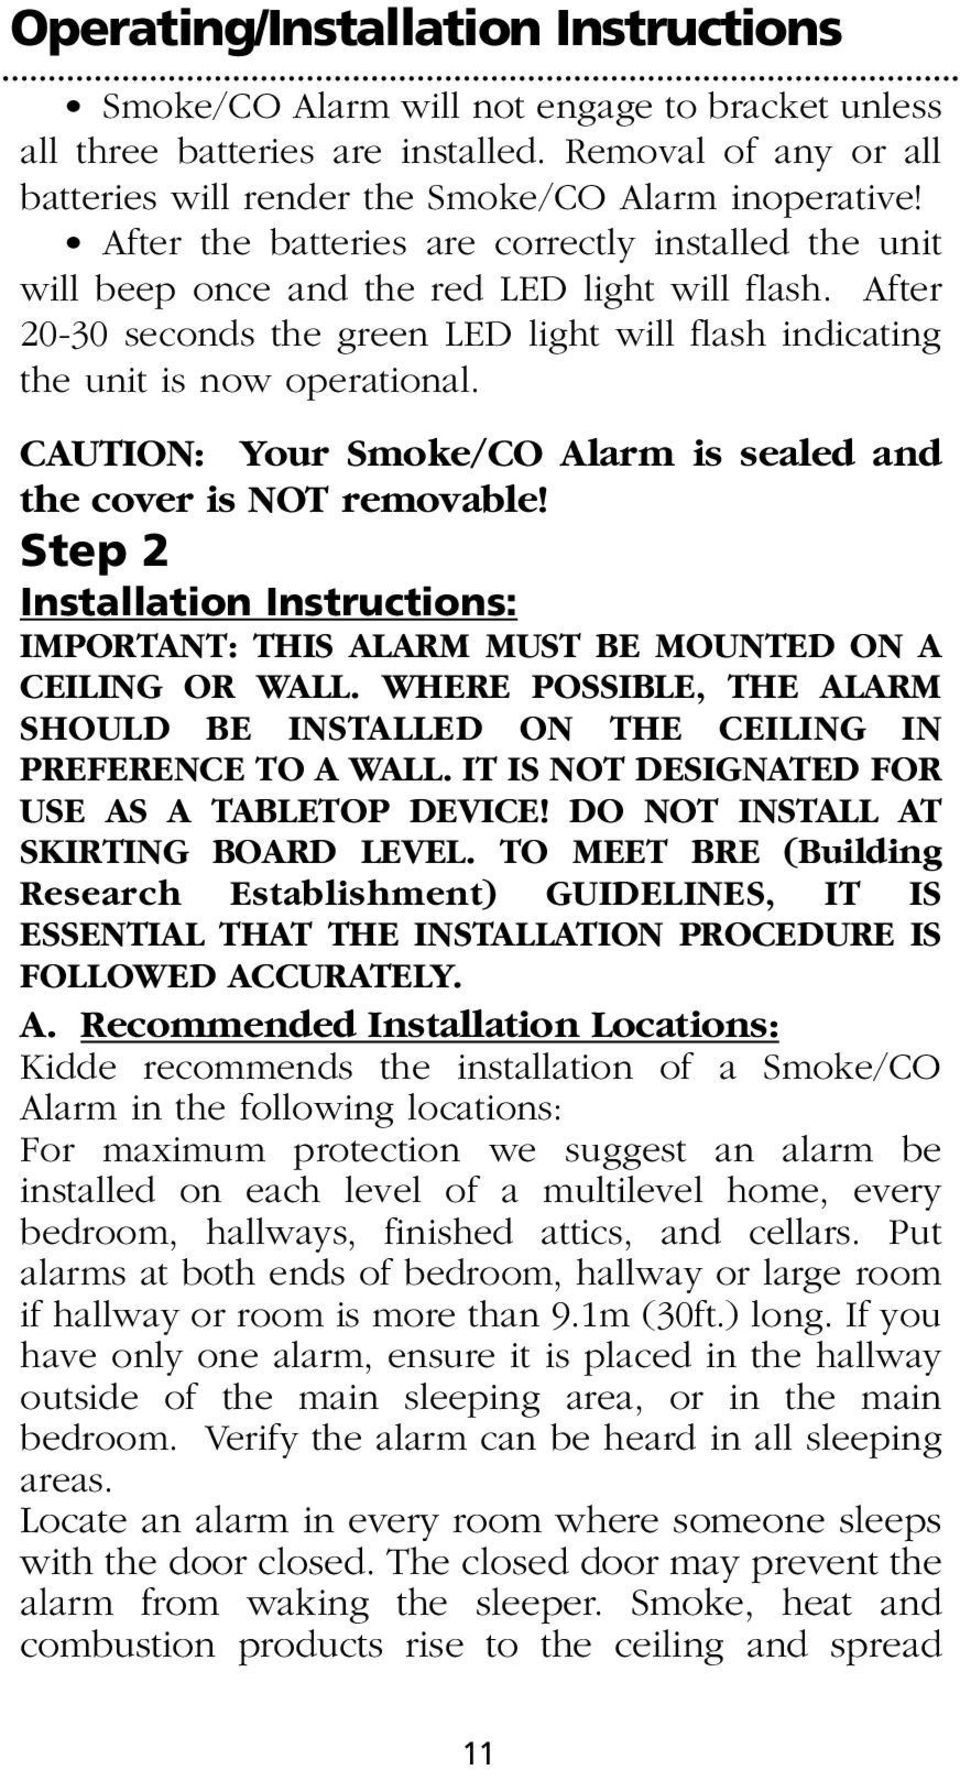 CAUTION: Your Smoke/CO Alarm is sealed and the cover is NOT removable! Step 2 Installation Instructions: IMPORTANT: THIS ALARM MUST BE MOUNTED ON A CEILING OR WALL.